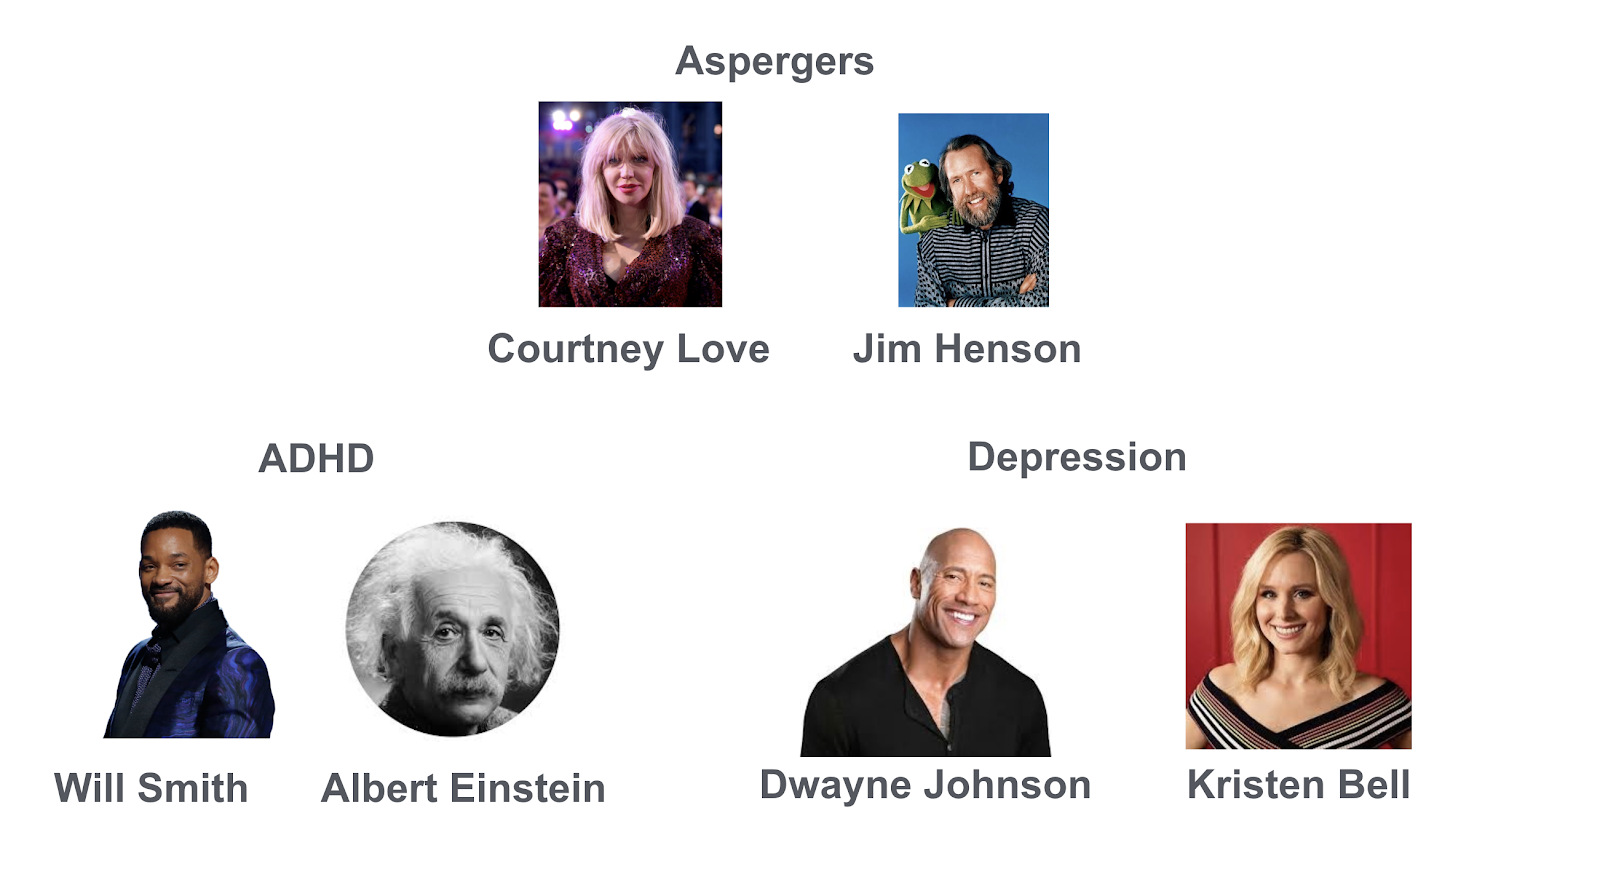 "Images of famous people with cognitive disabilities. Courtney Love and Jim Henson have Aspergers. Will Smith and Albert Einstein have ADHD. Dawayne ""The Rock"" Johnson, and Kirsten Bell have depression."